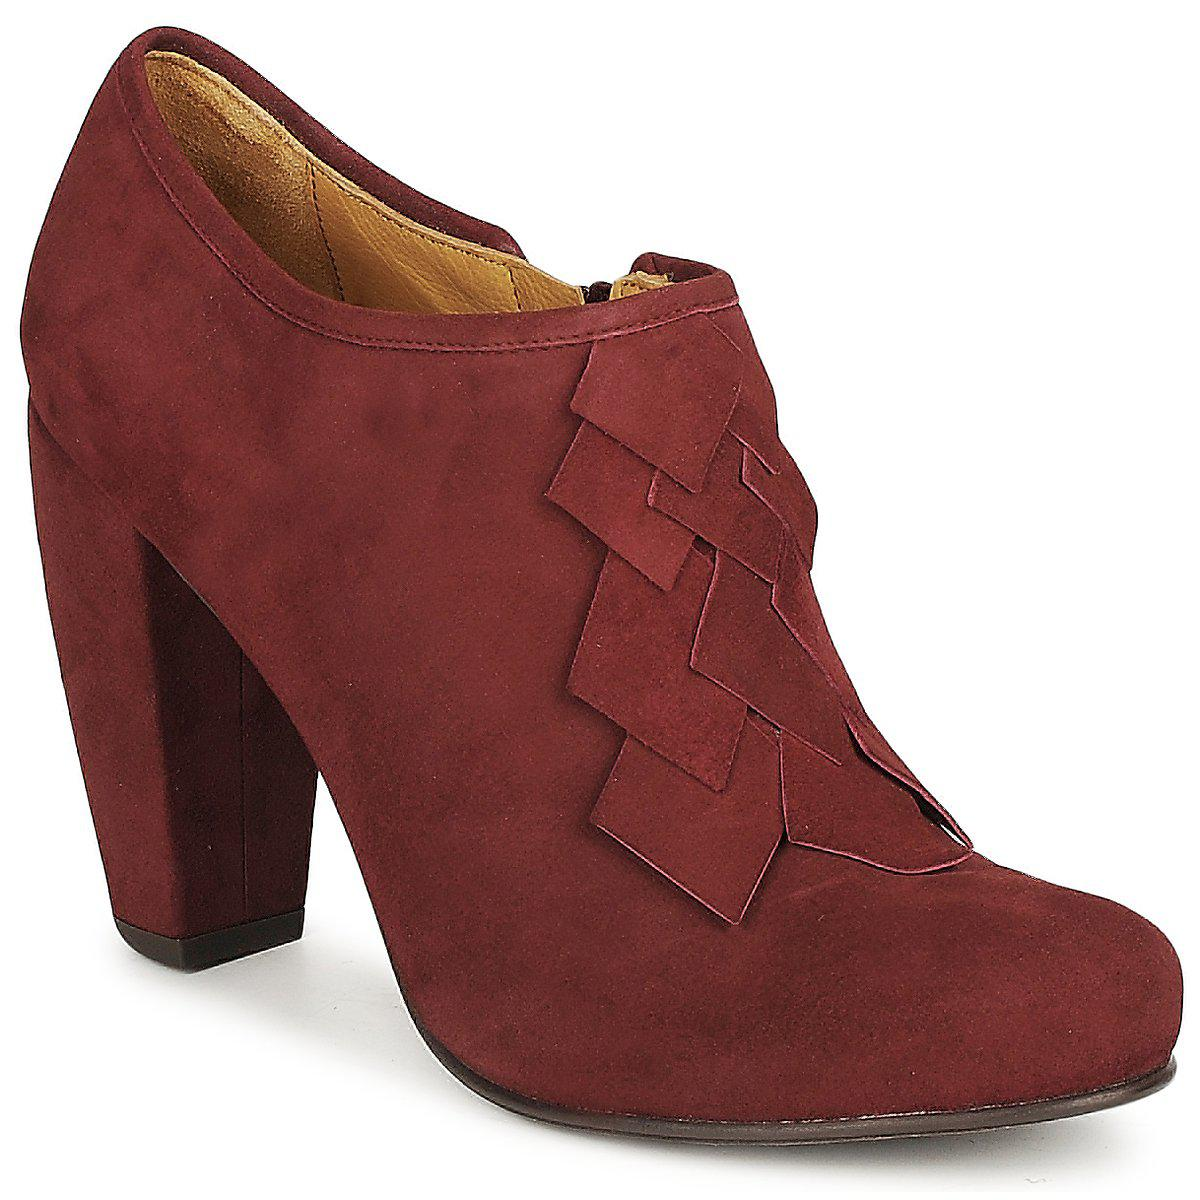 Coclico HAMA women's Low Boots in Largest Supplier Online Huge Range Of Cheap Free Shipping Cheap Sale Choice dKixvOgym